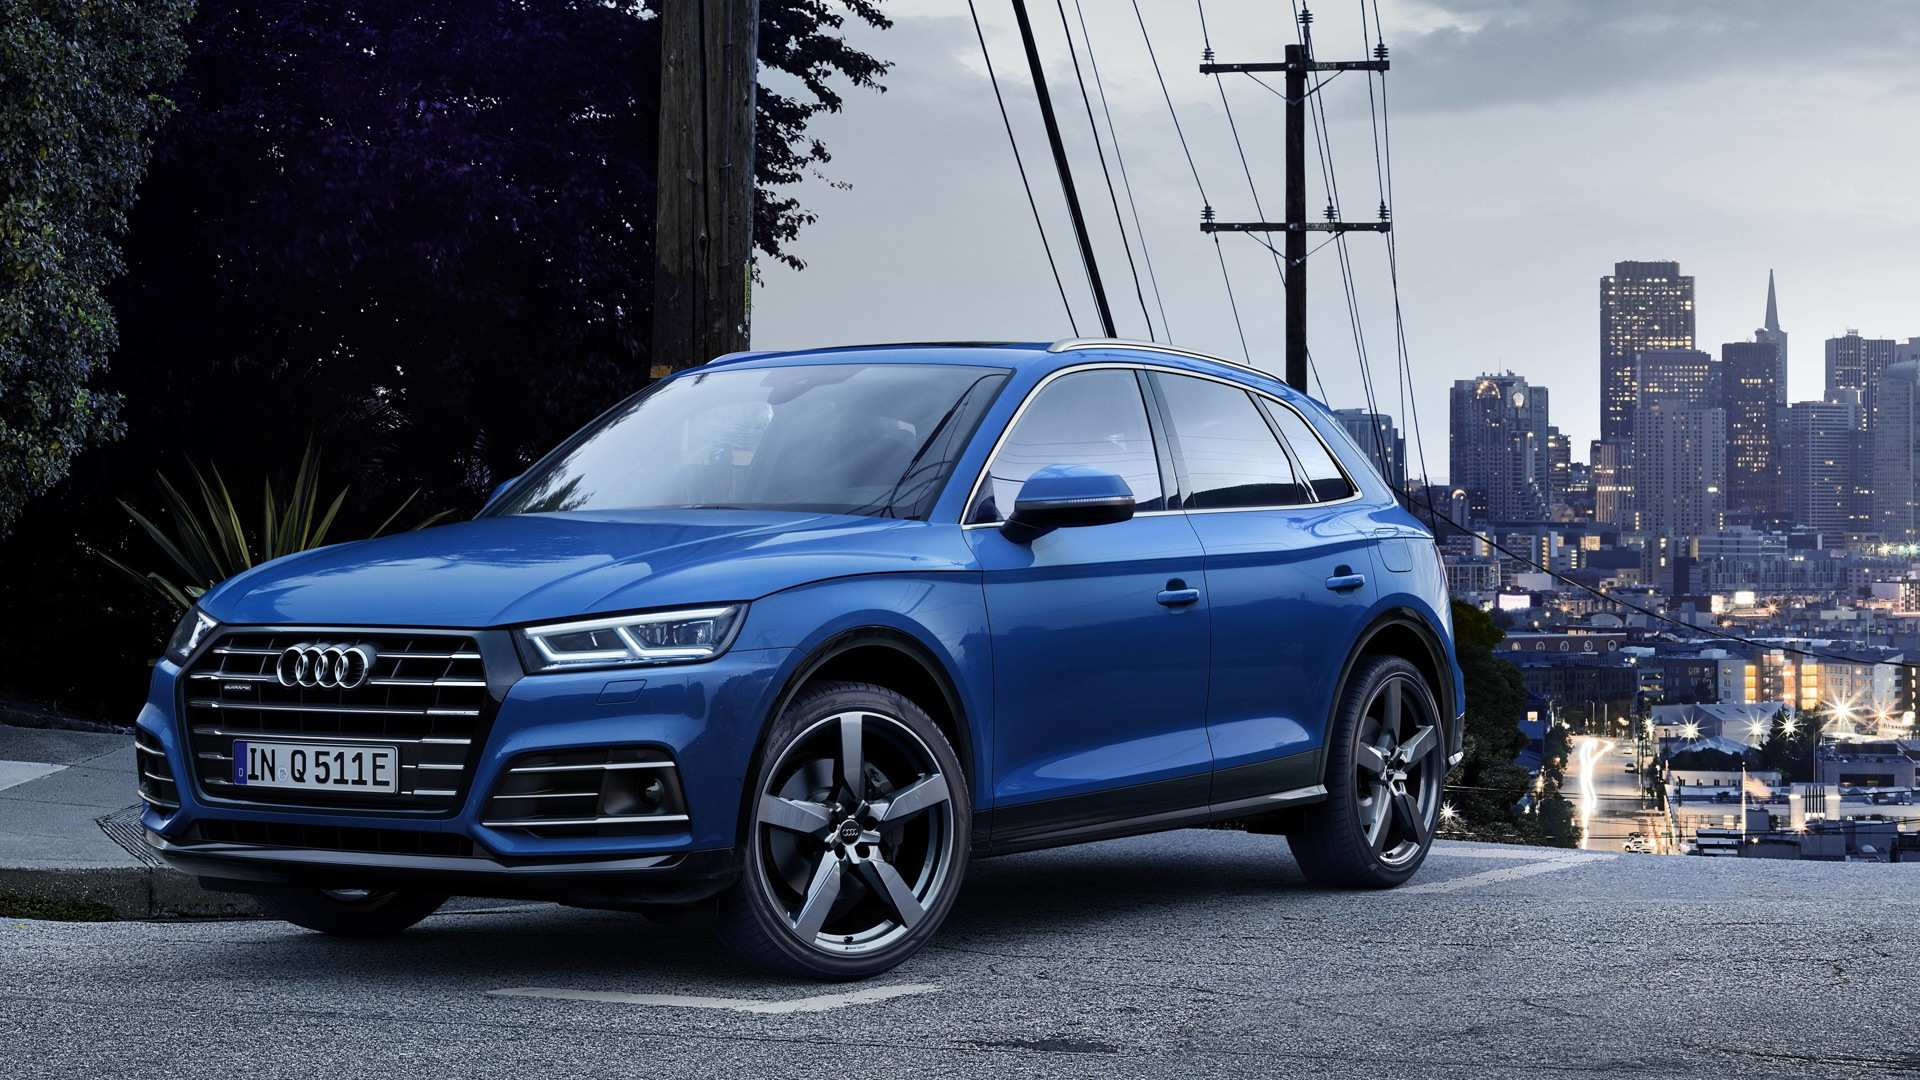 94 The Best Audi X5 2020 Pricing